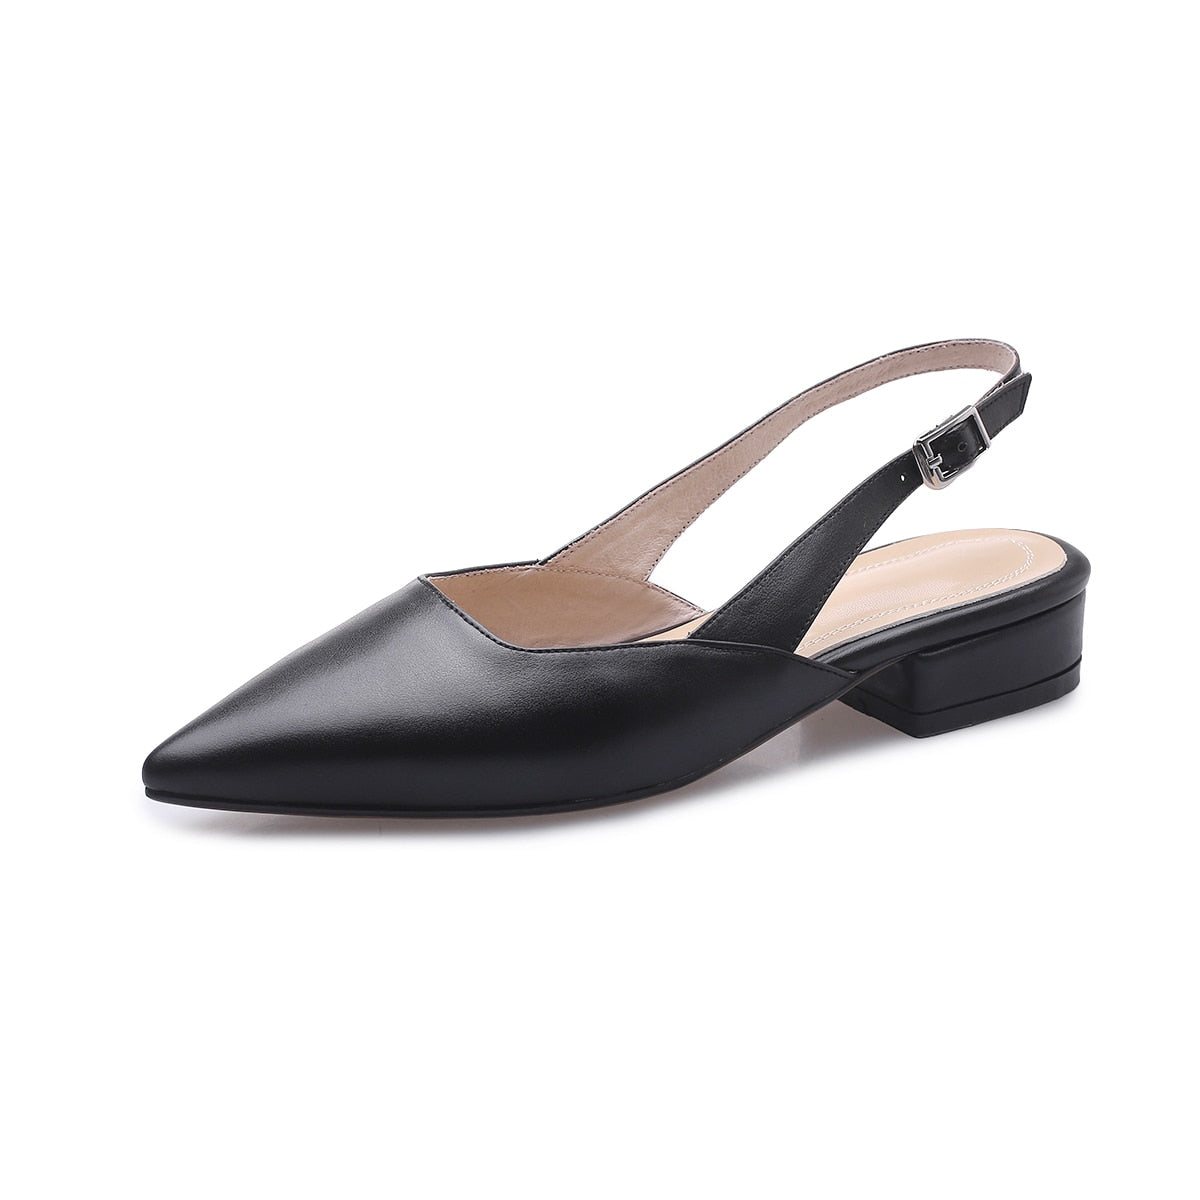 Leather Pointed Toe Slingbacks With Low Heel